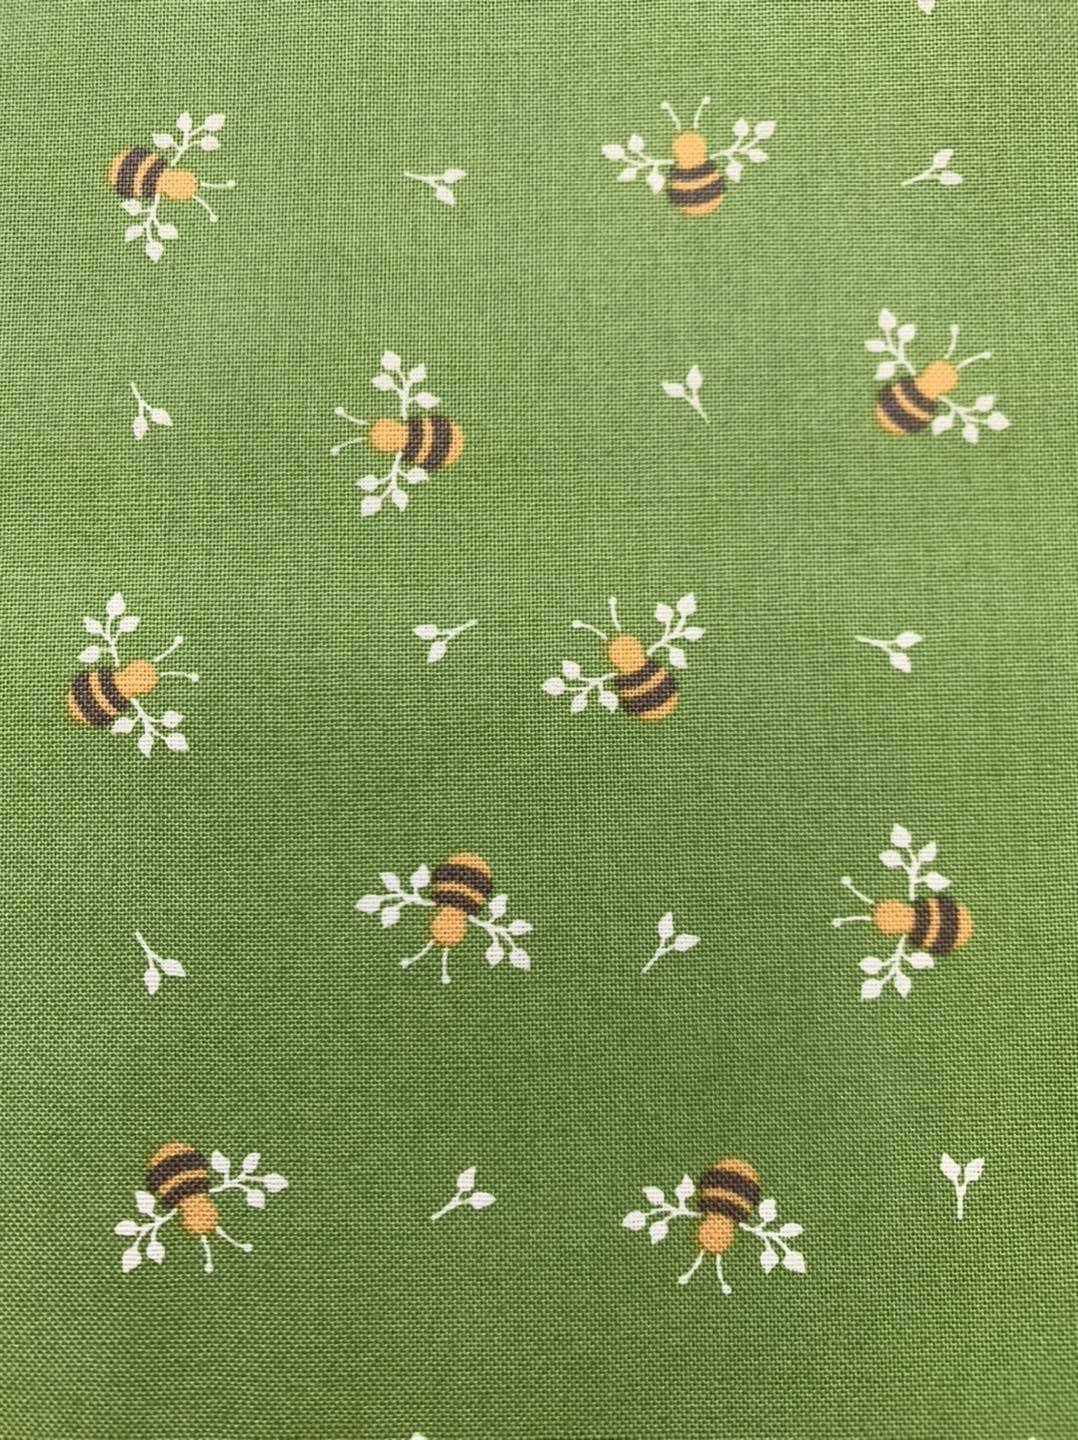 Bees on Green